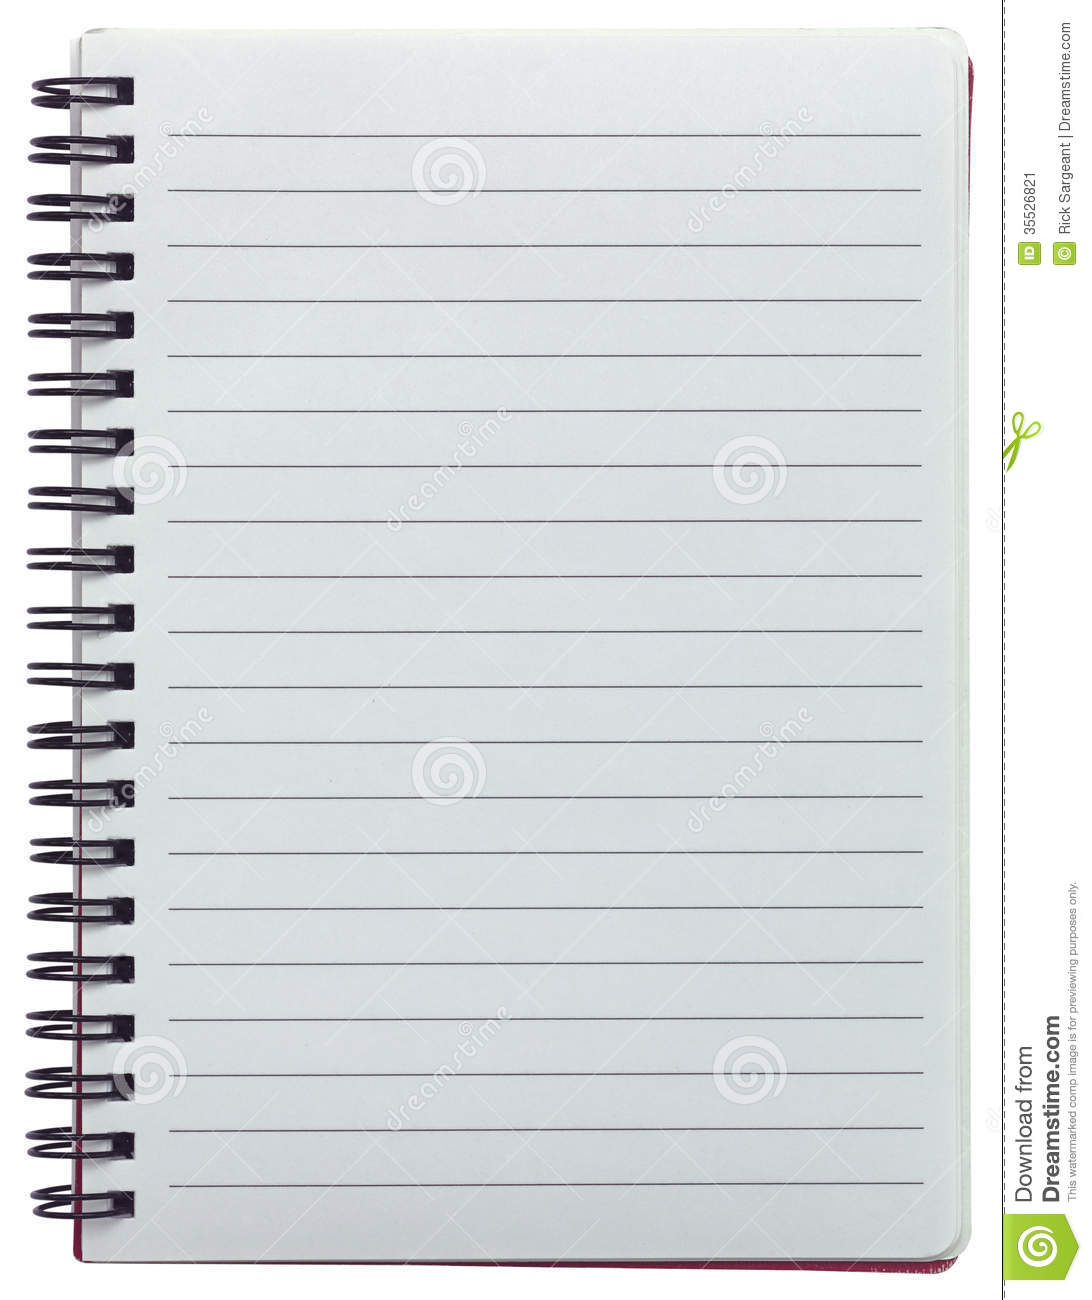 Spiral bound, lined blank notebook isolated on white background.